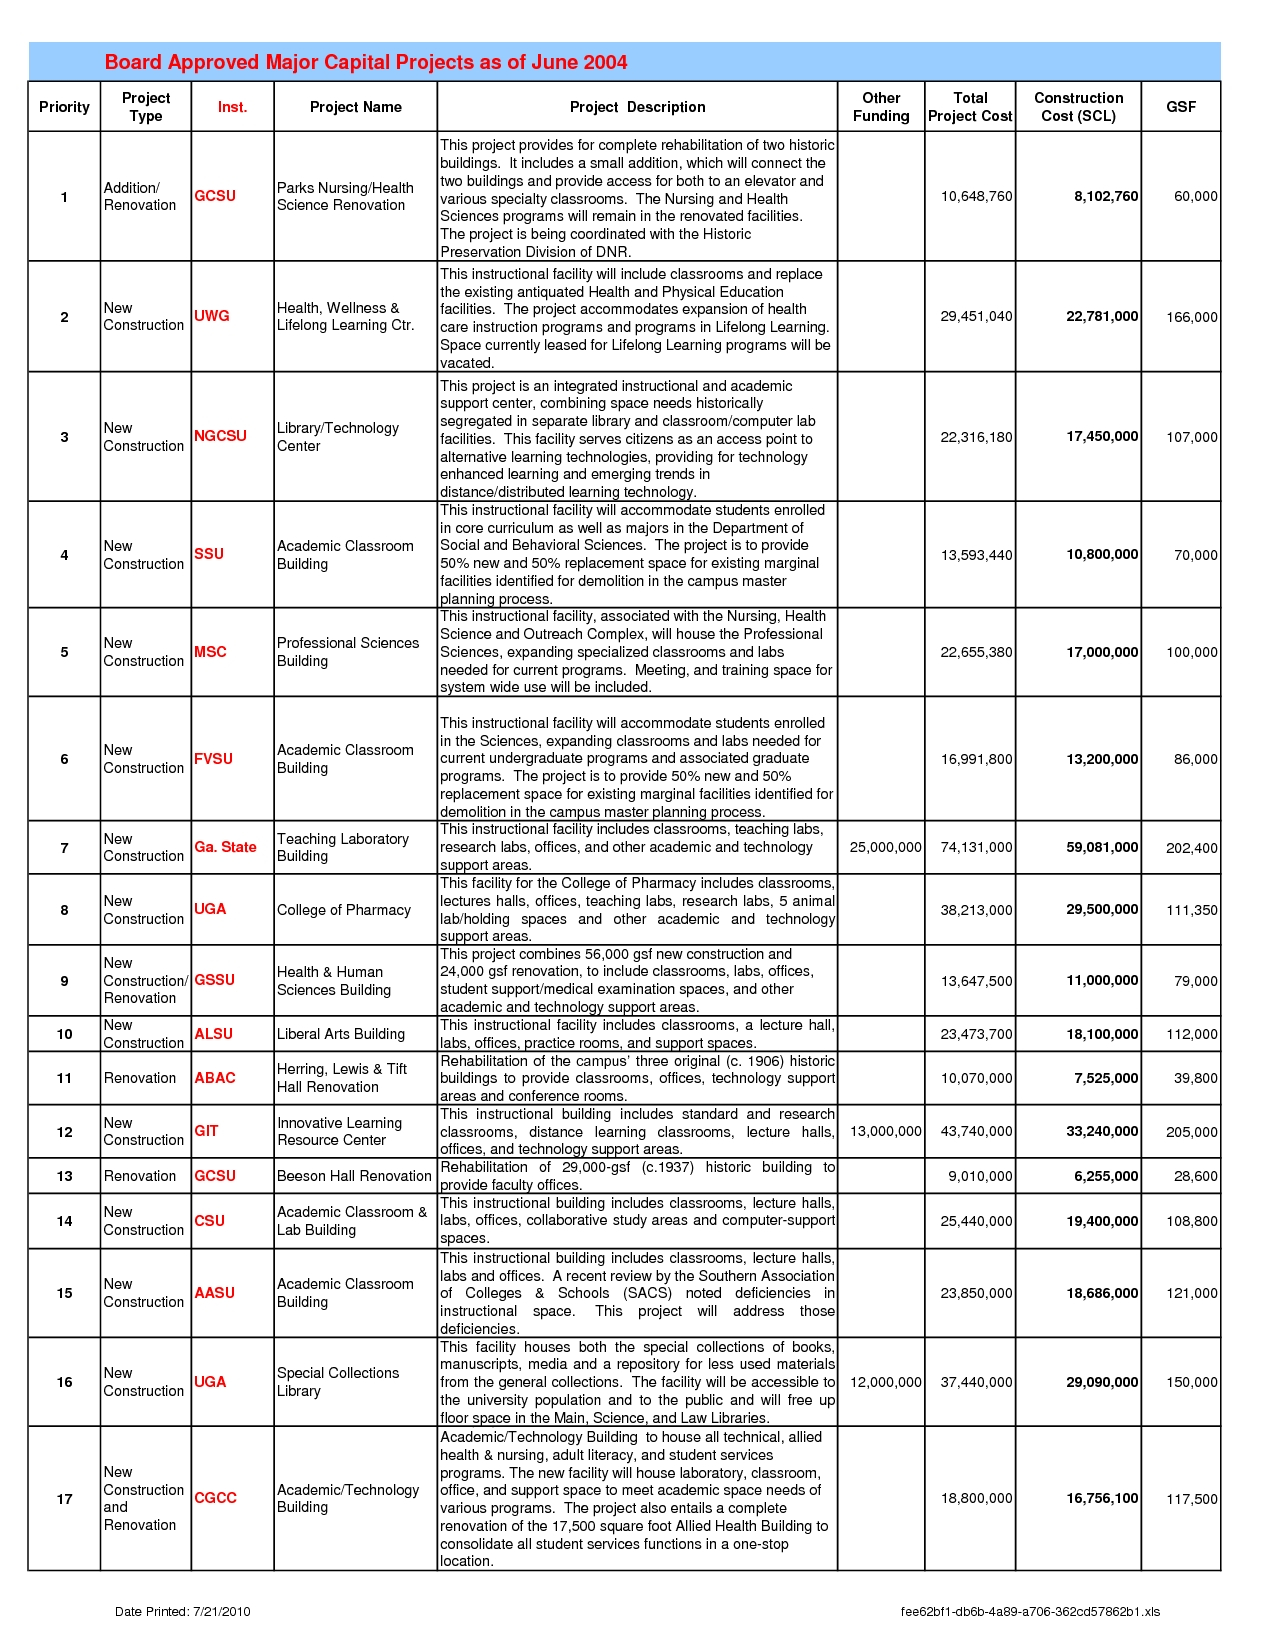 Home Renovation Budget Spreadsheet Template | Spreadsheets And Within Home Renovation Budget Spreadsheet Template